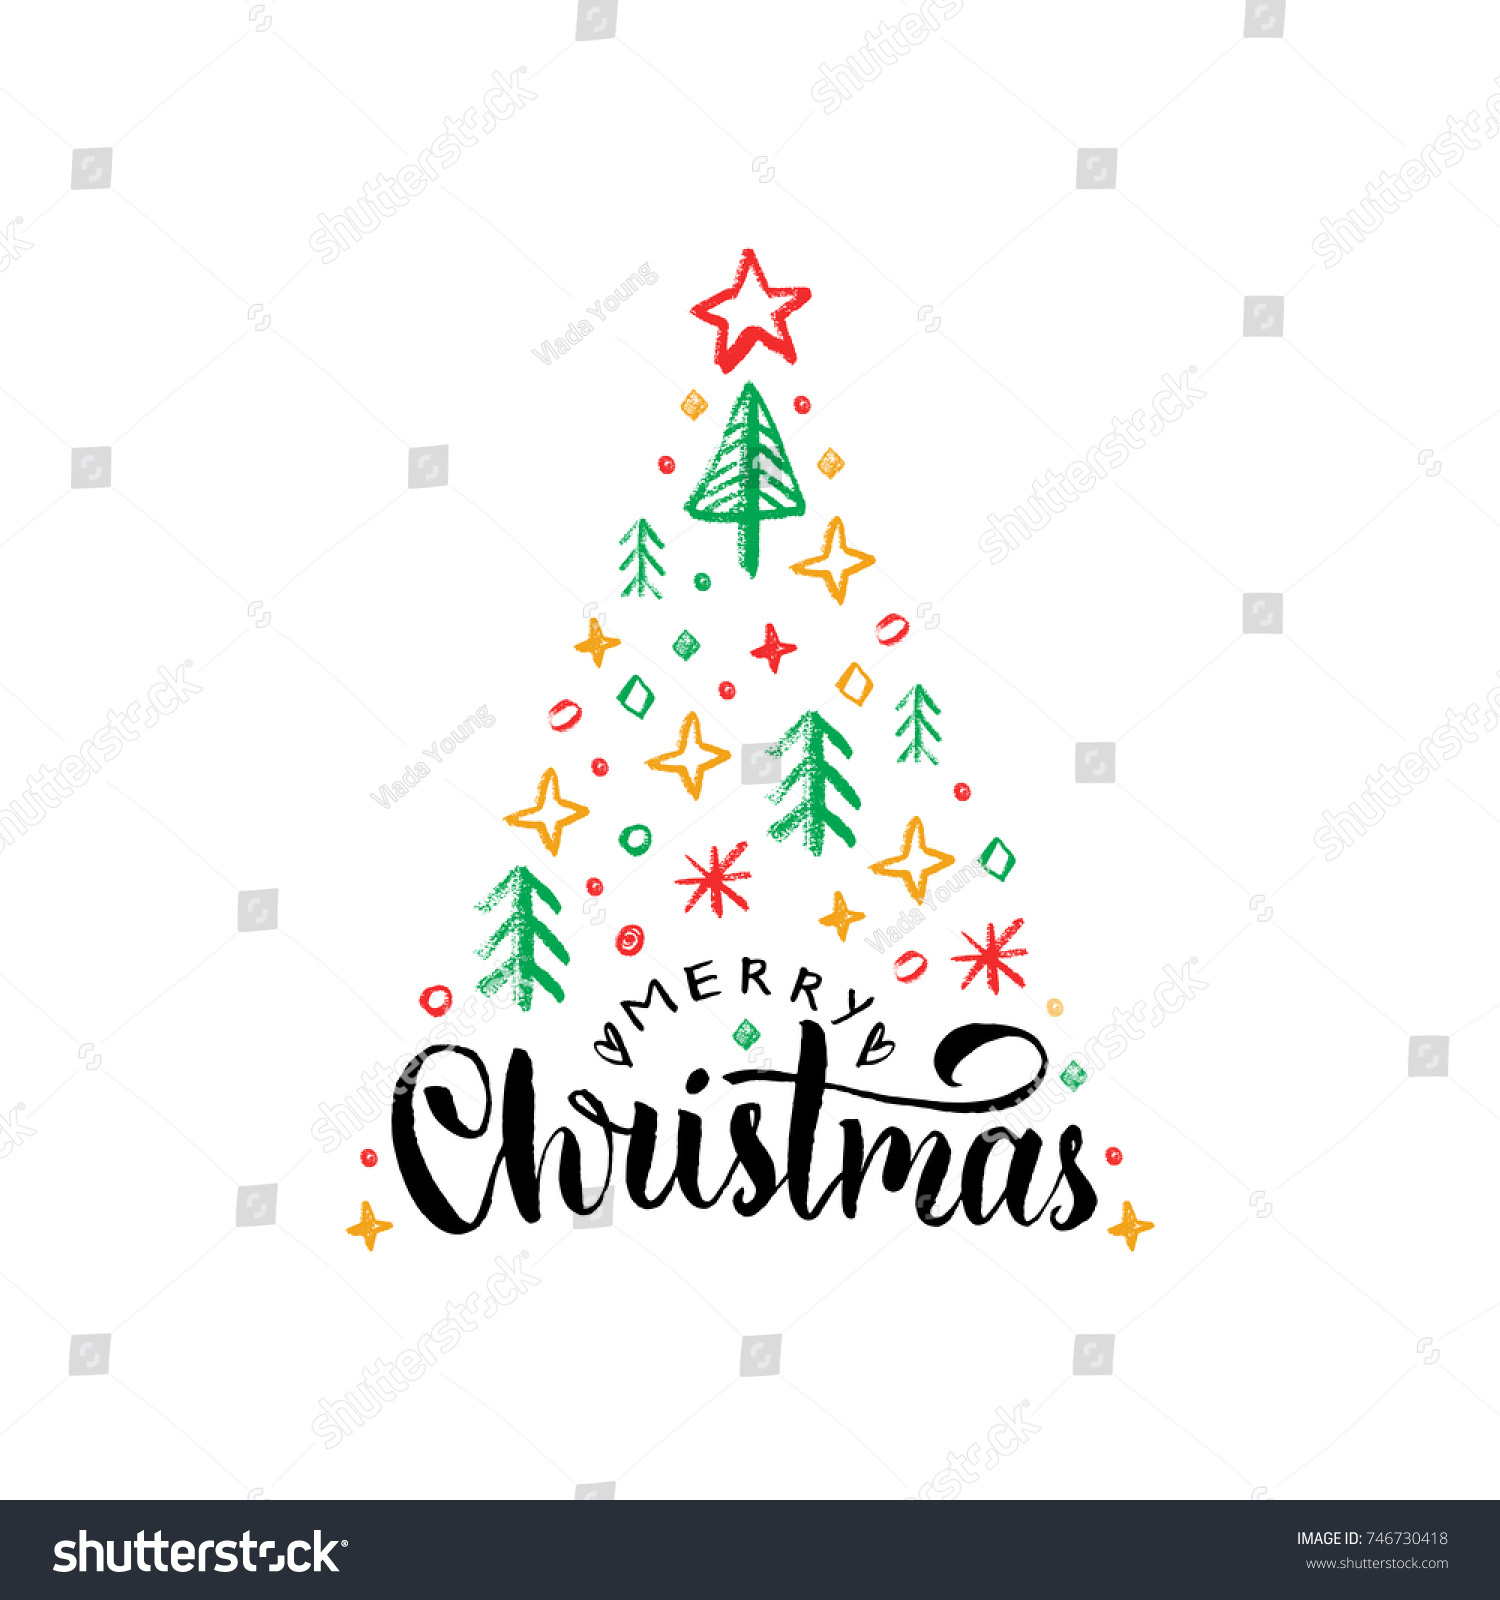 Merry Christmas Lettering On White Background Stock Vector (Royalty ...